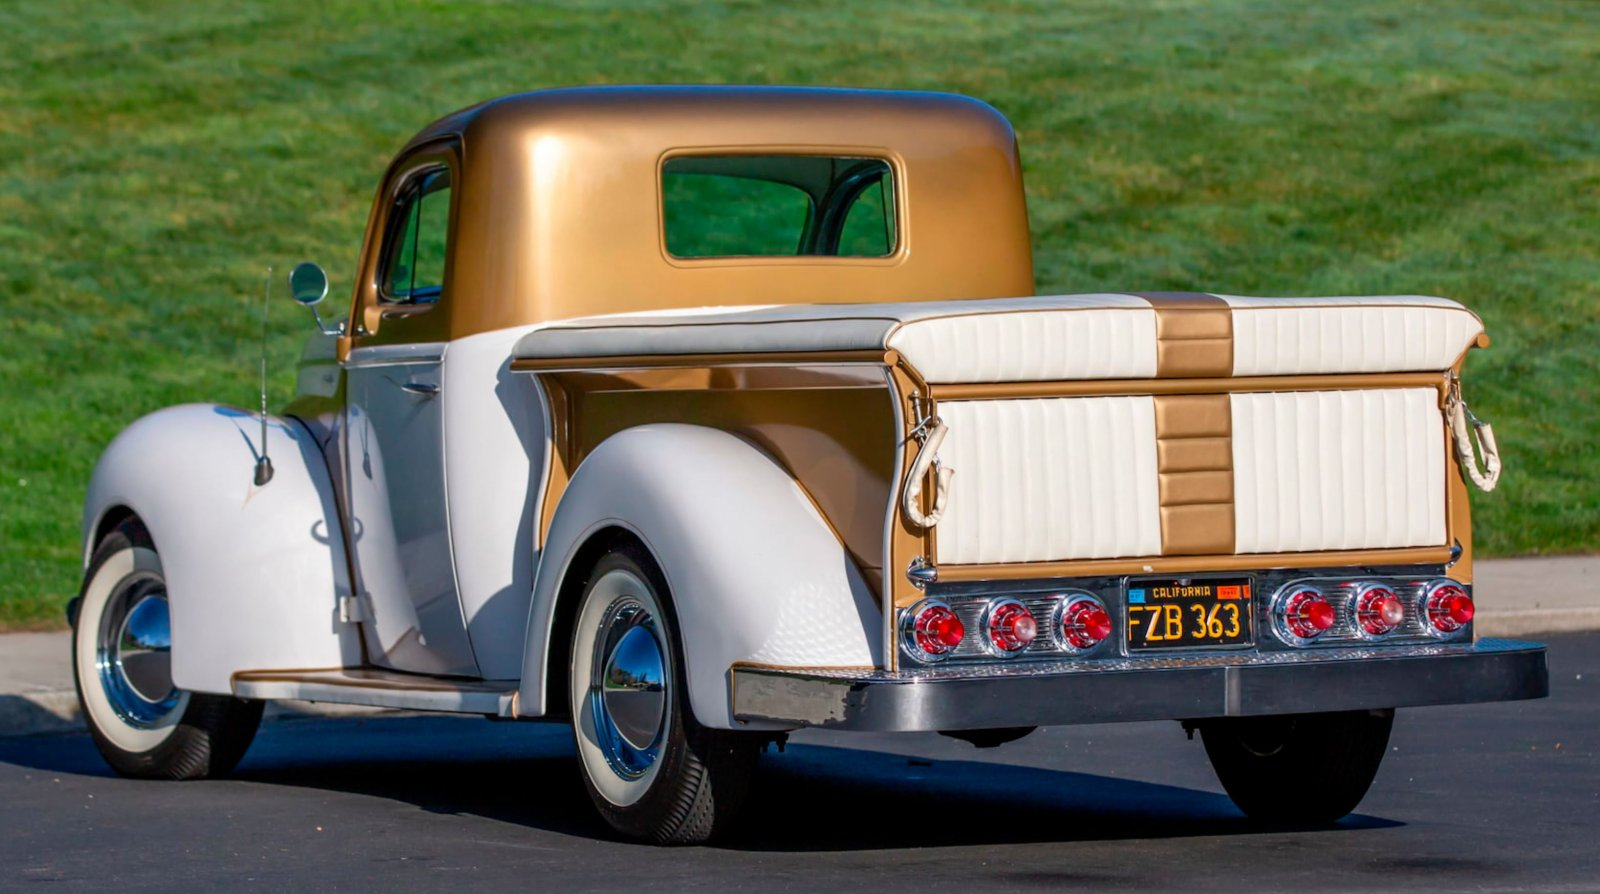 1937 Ford Freighter Pickup Truck Gold Pearl 9.JPG